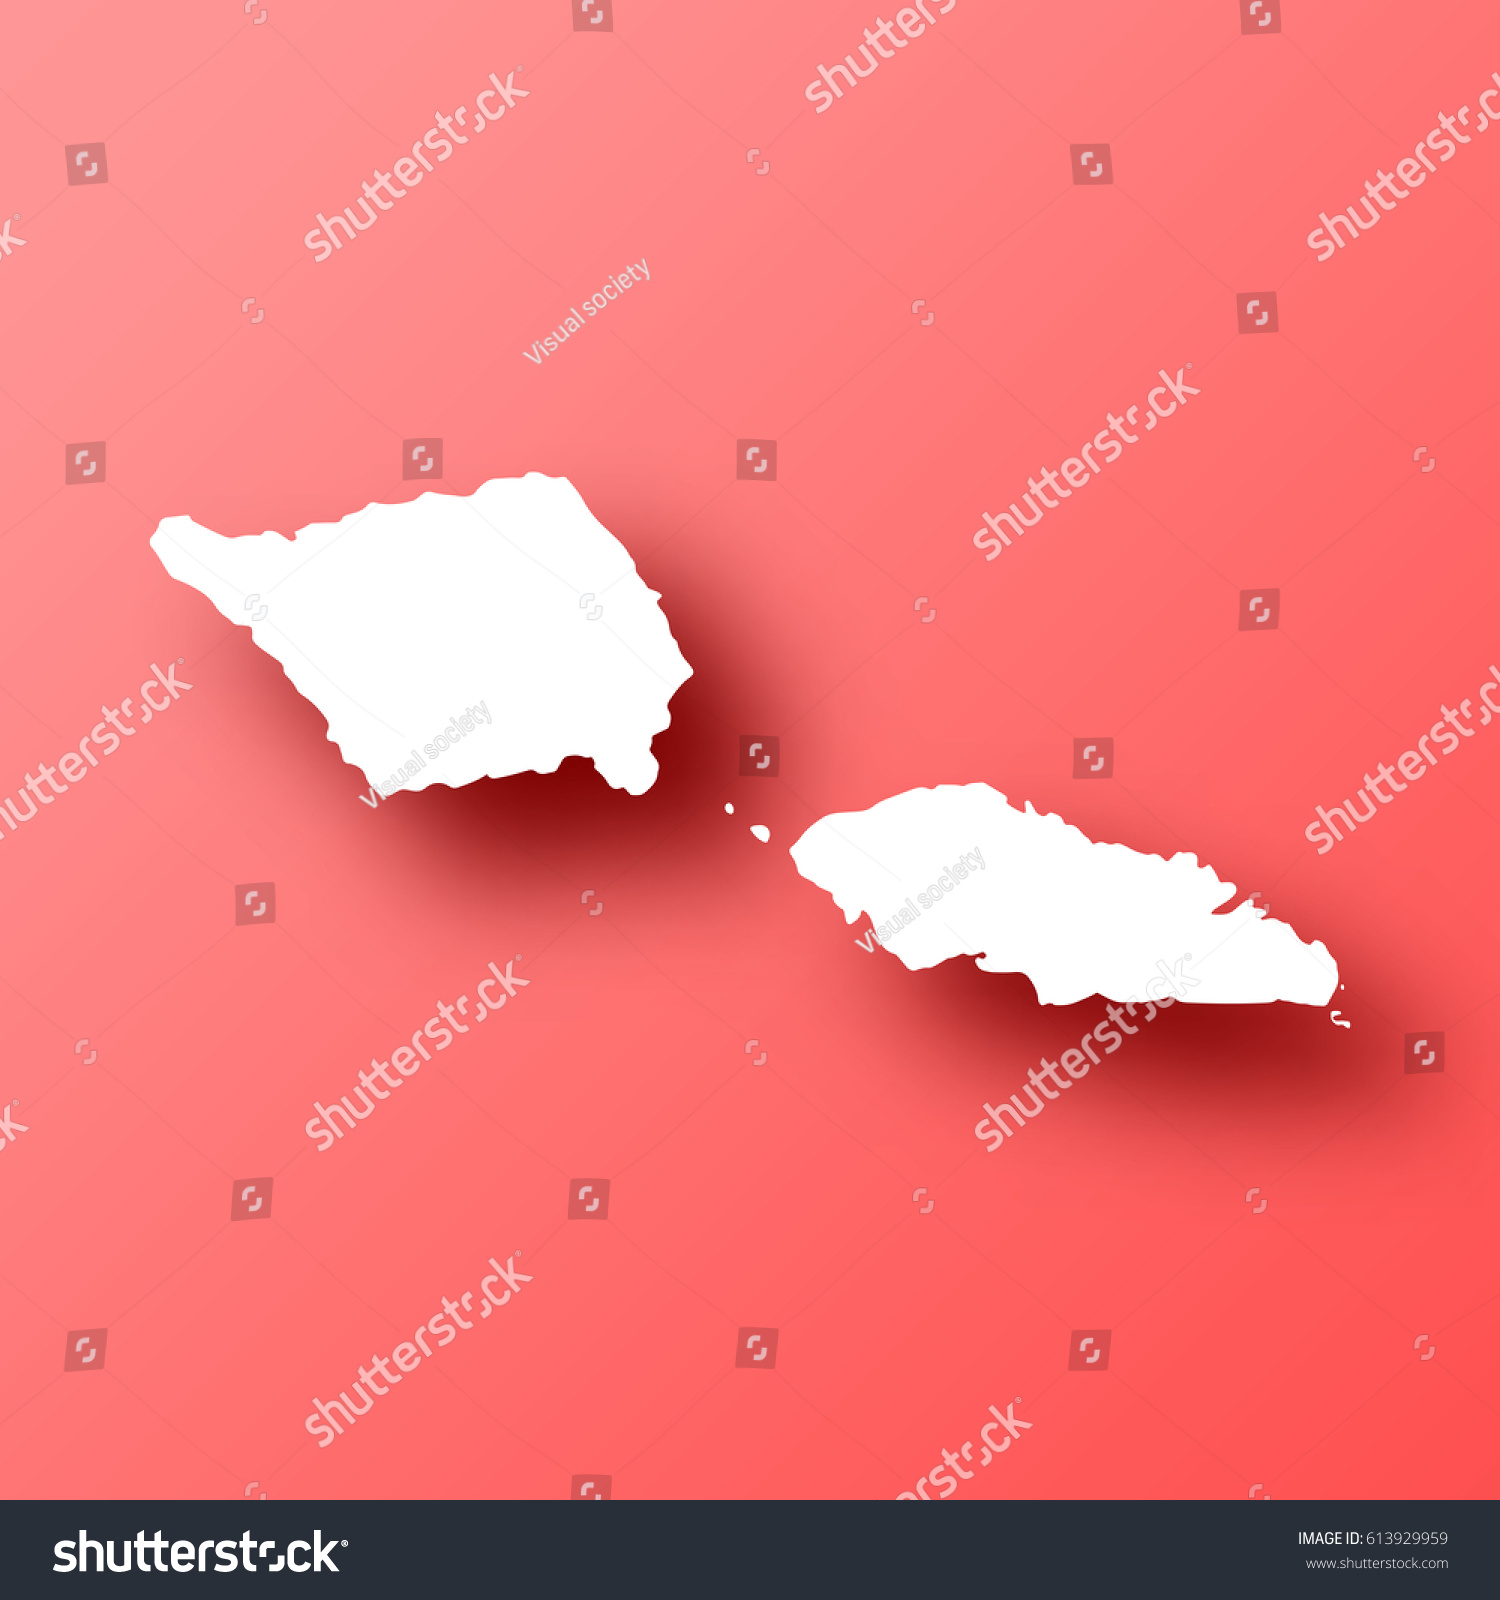 Cyprus Map Vector%0A Where Is Samoa On The Map Samoa Map isolated on red background with shadow  High detailed